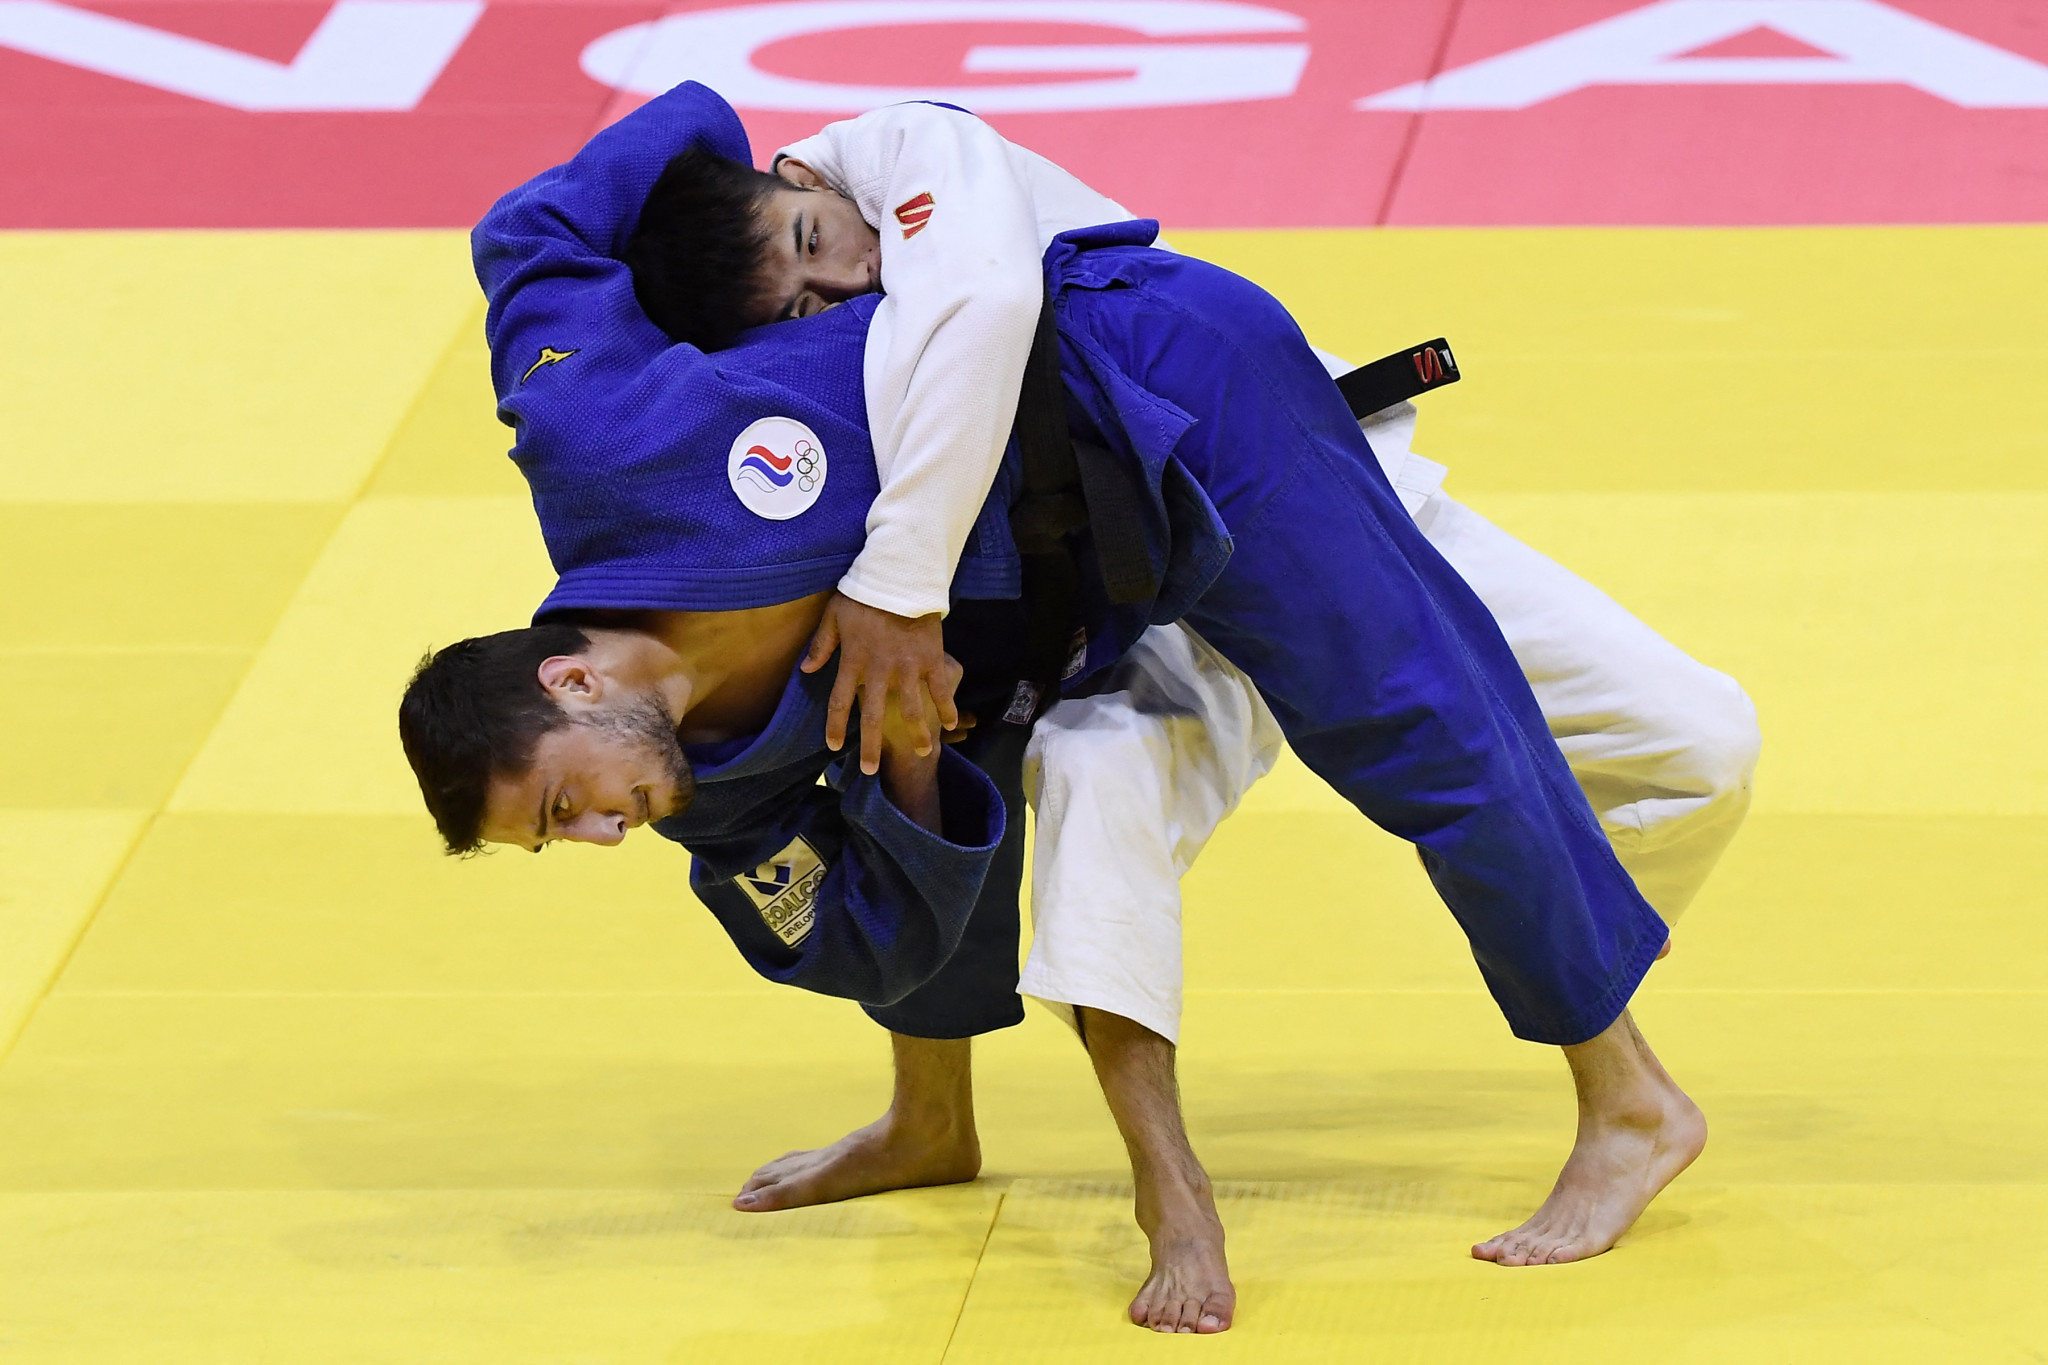 Yago Abuladze proved too strong for Gusman Kyrgybayev in the men's under-60kg on the opening day of action in Budapest ©Getty Images